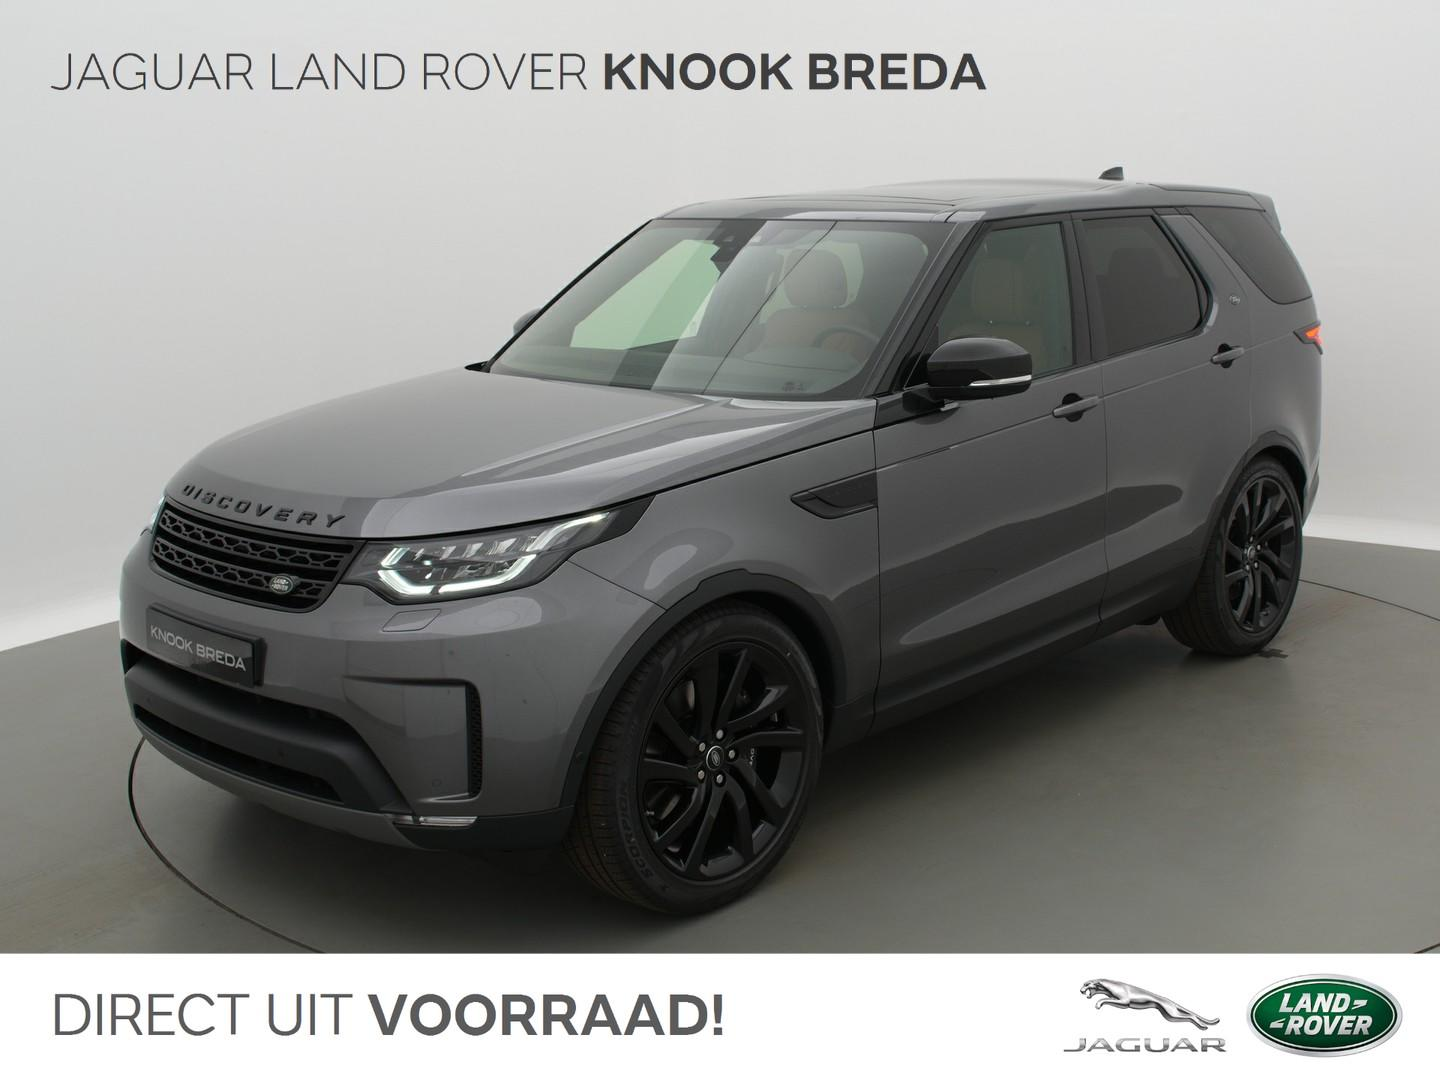 Land rover Discovery 3.0 sdv6 hse 7p.